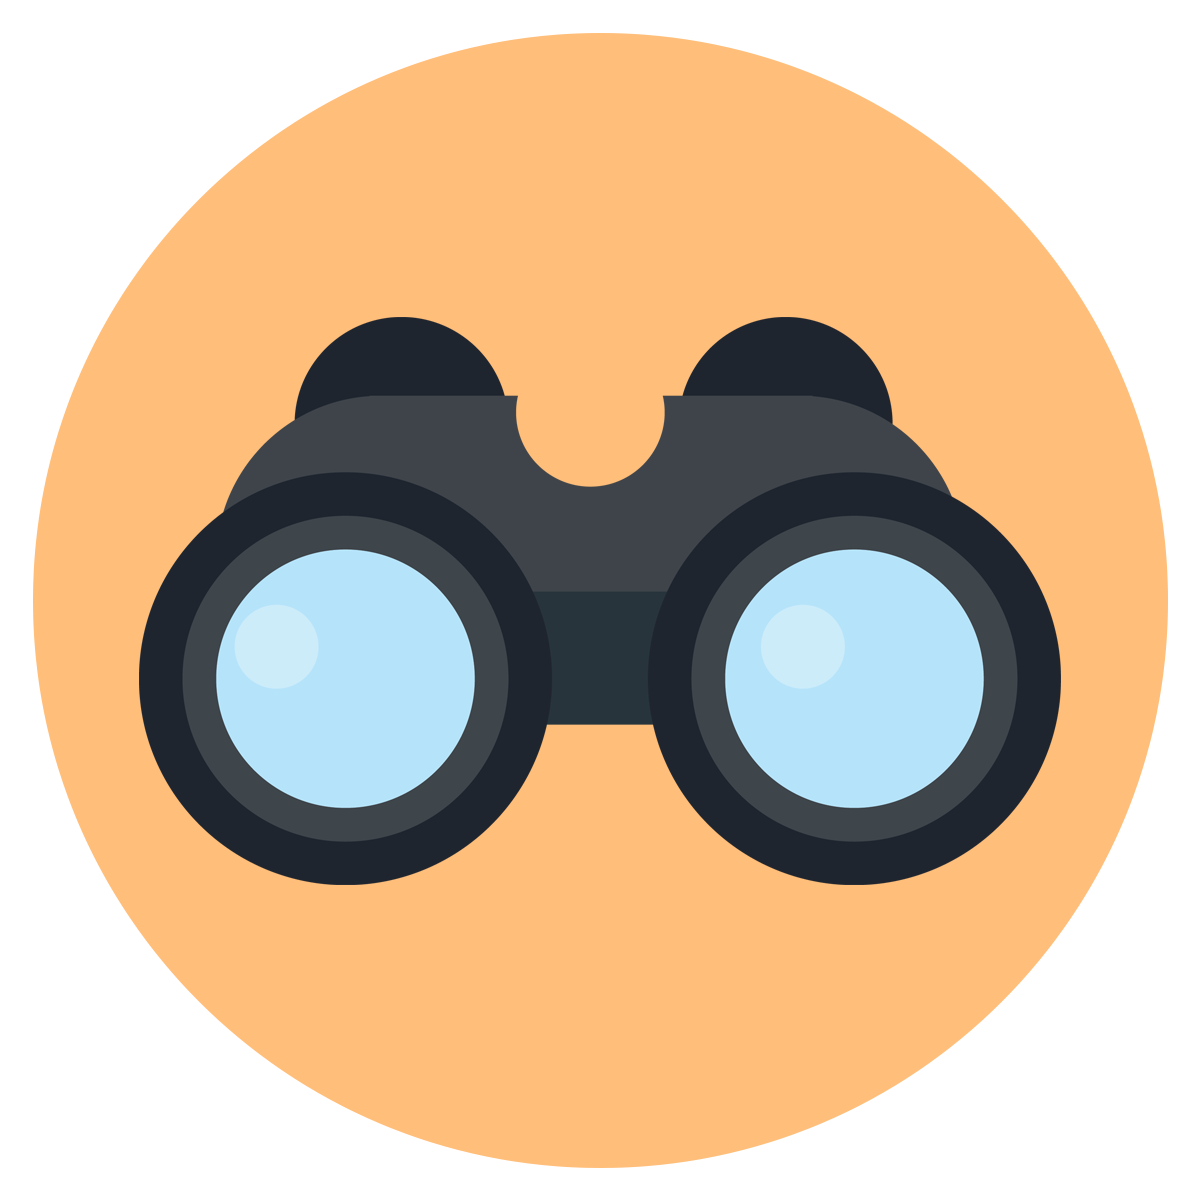 Vision clipart binoculars. Mission and chef tony